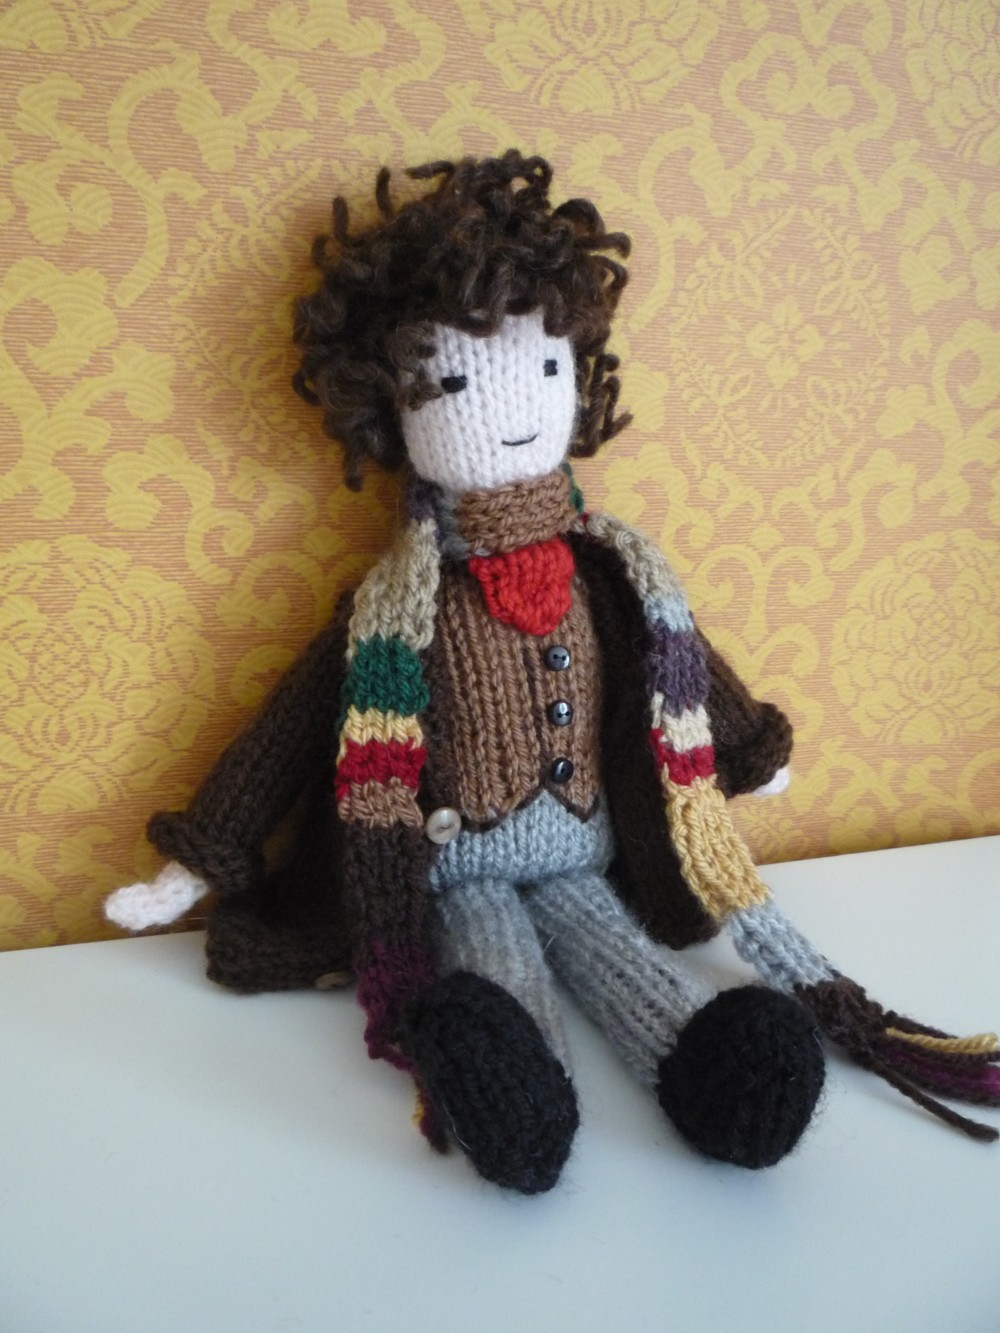 Knit for Victory: Tom Baker doll